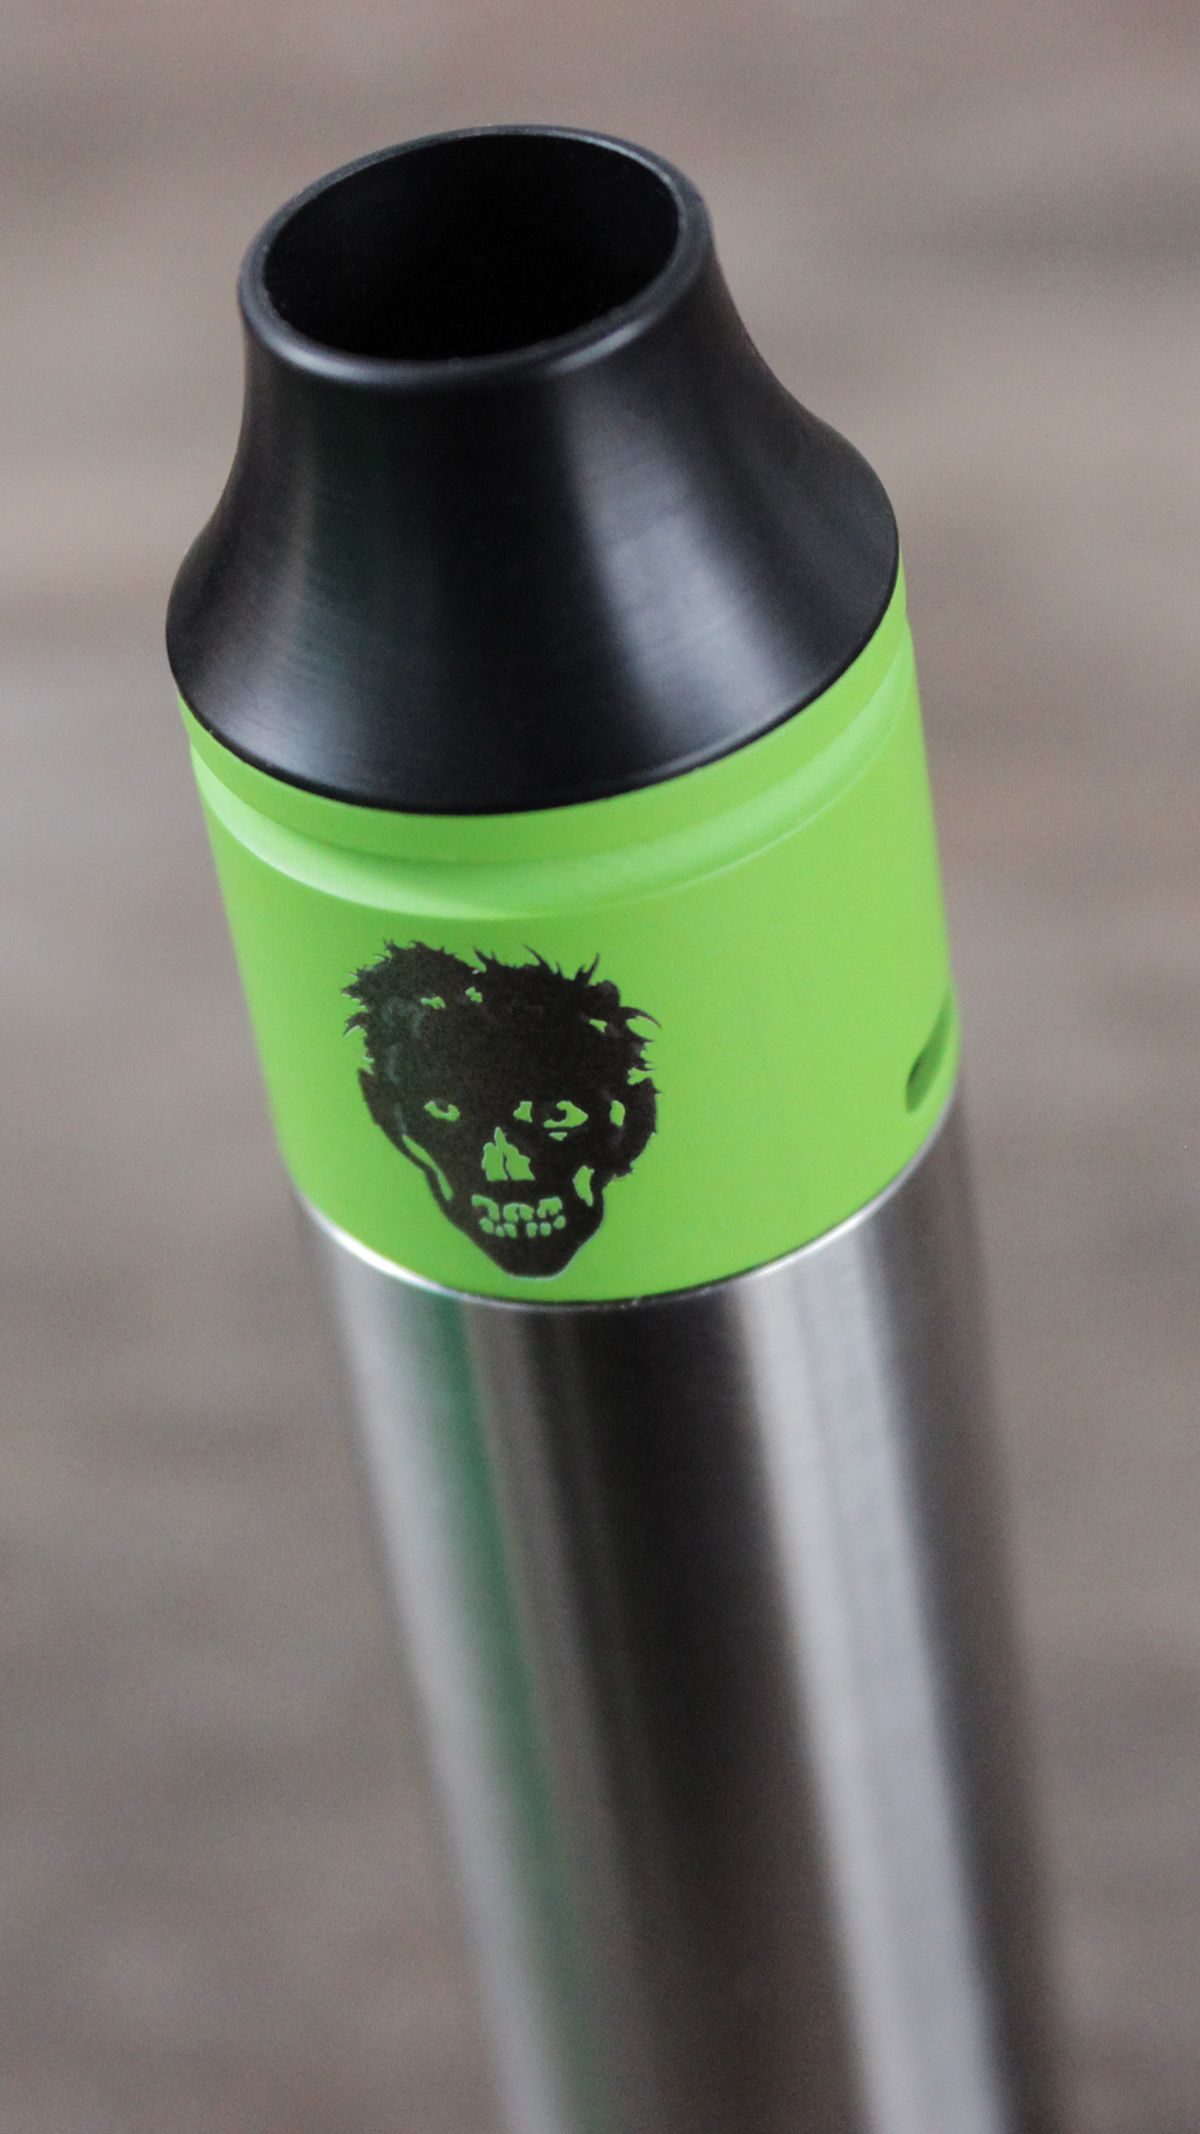 Freakshow Mini Undead Rda Zombie Redbuildable Atomizer Goon Styled 22mm Rebuildable Dripping Black Worldwide Shipping